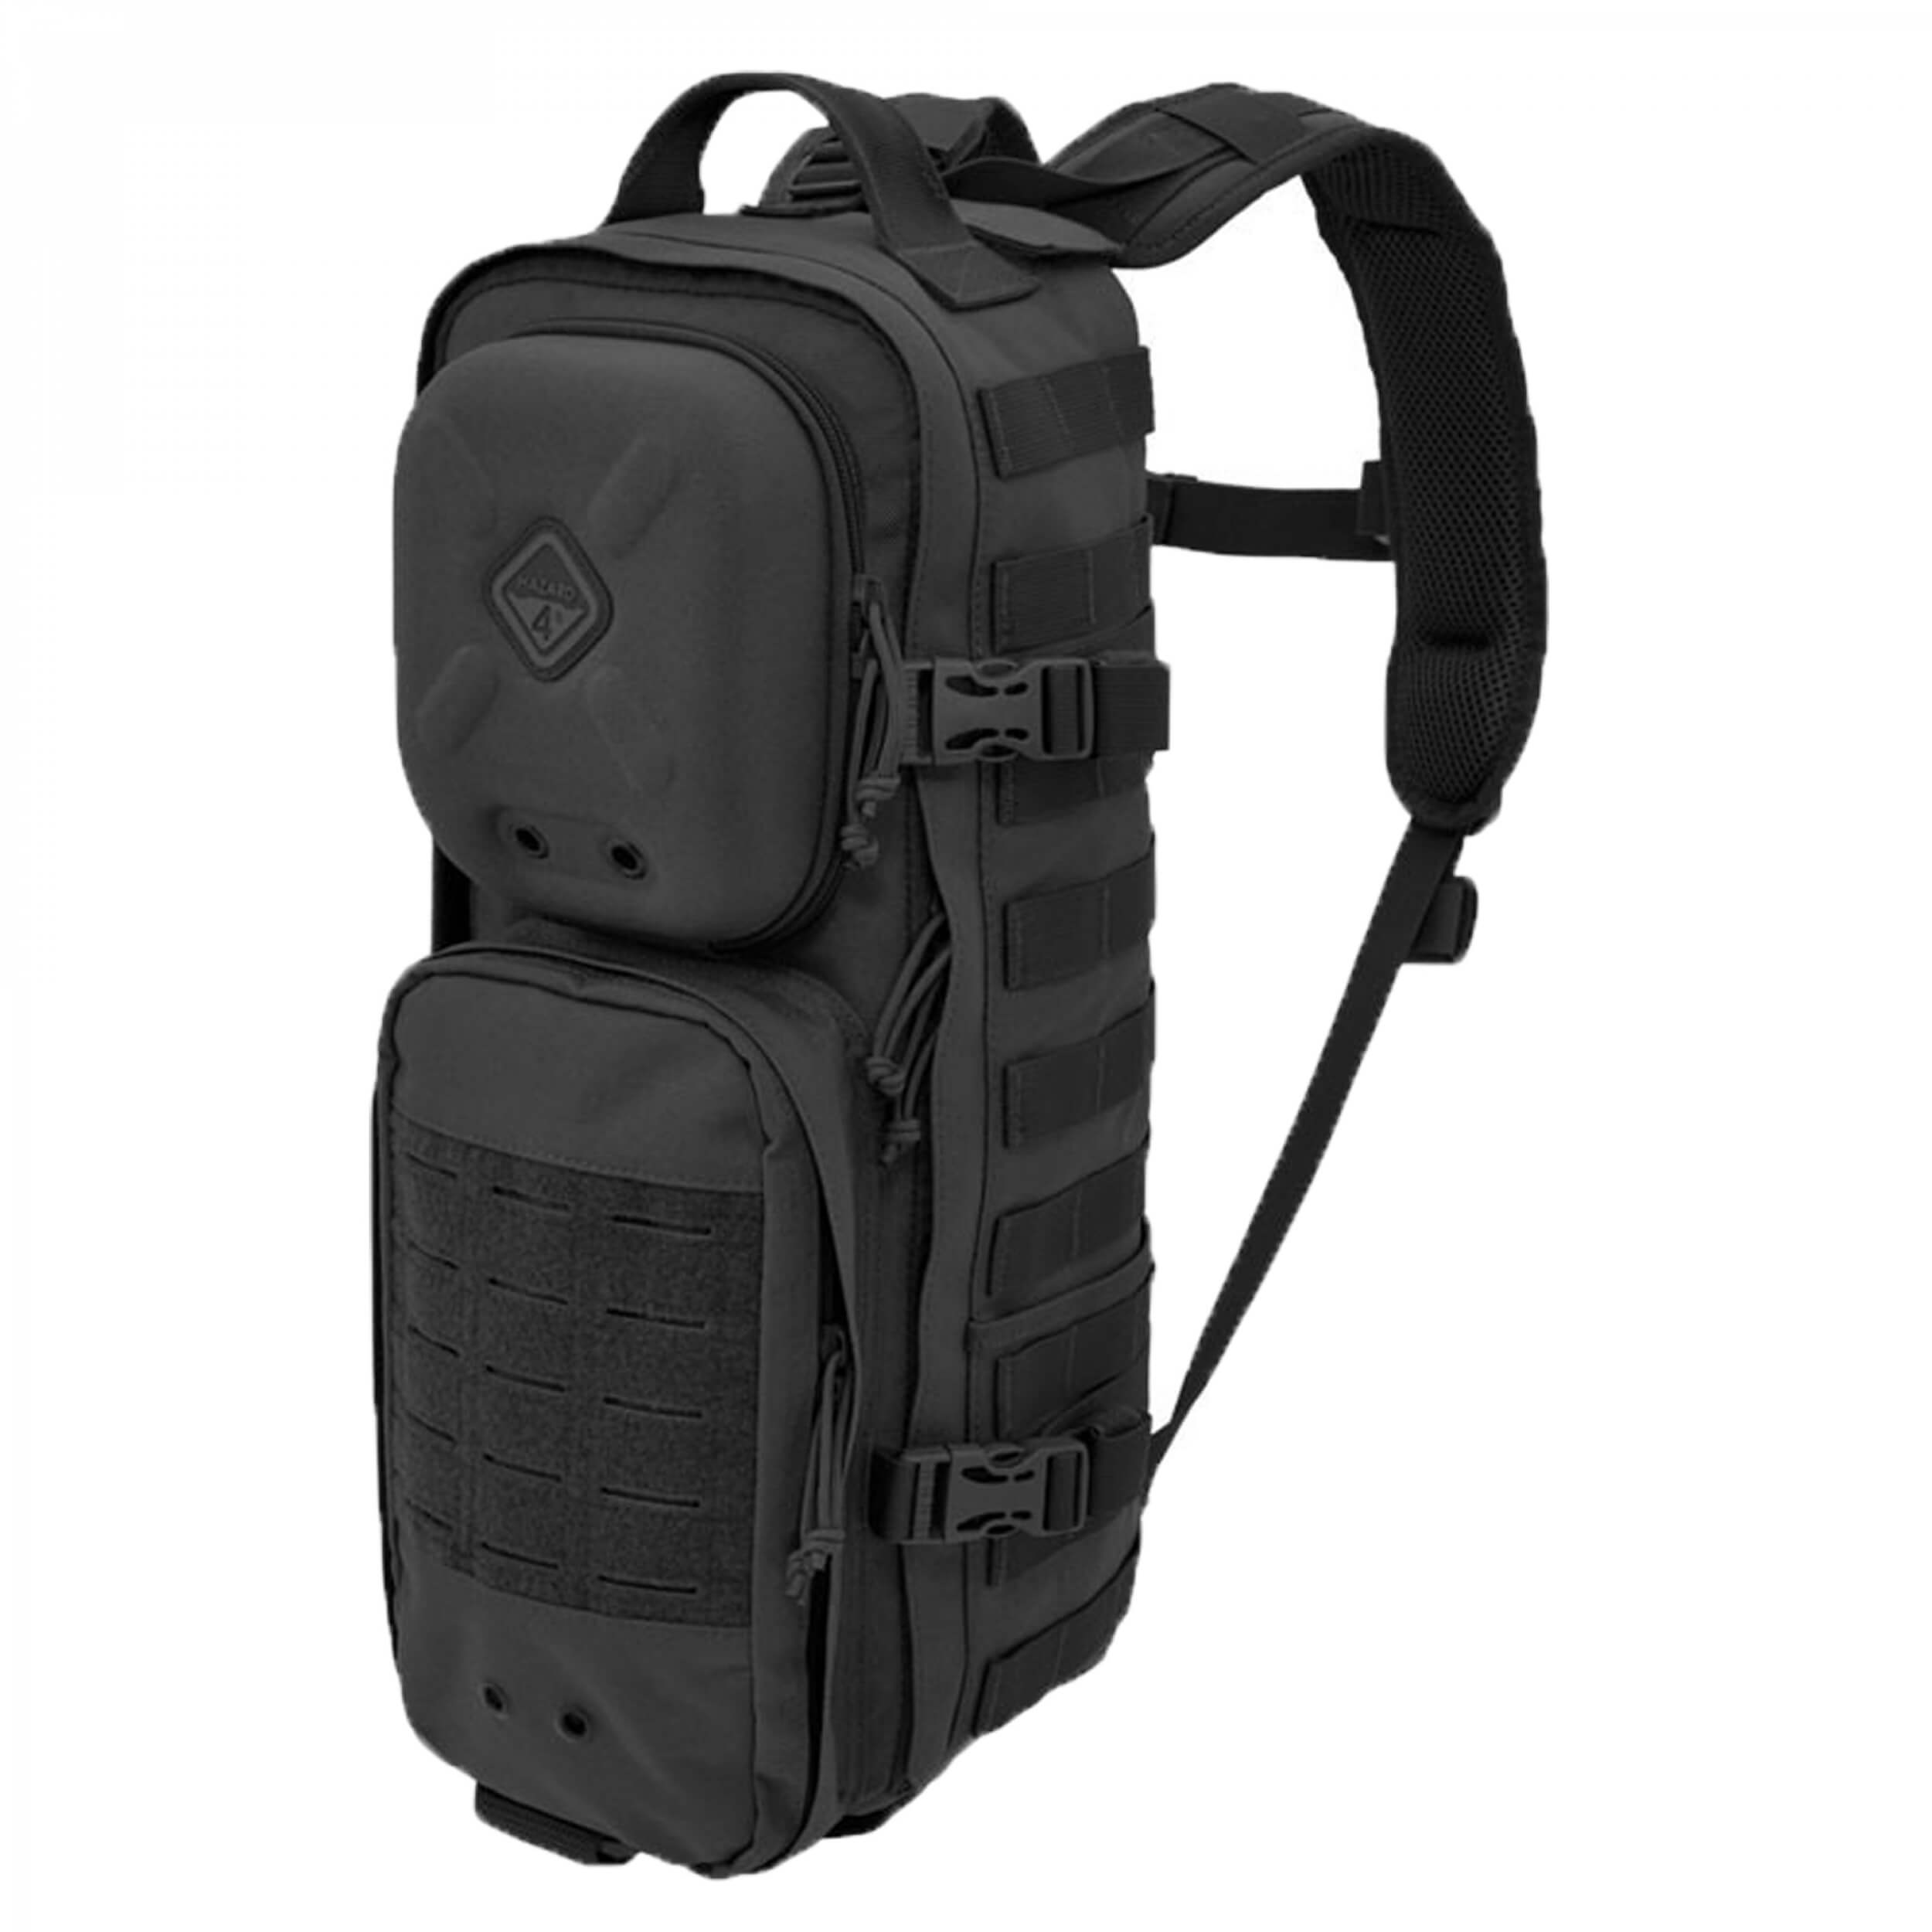 Hazard 4 Plan-C Dual Strap black